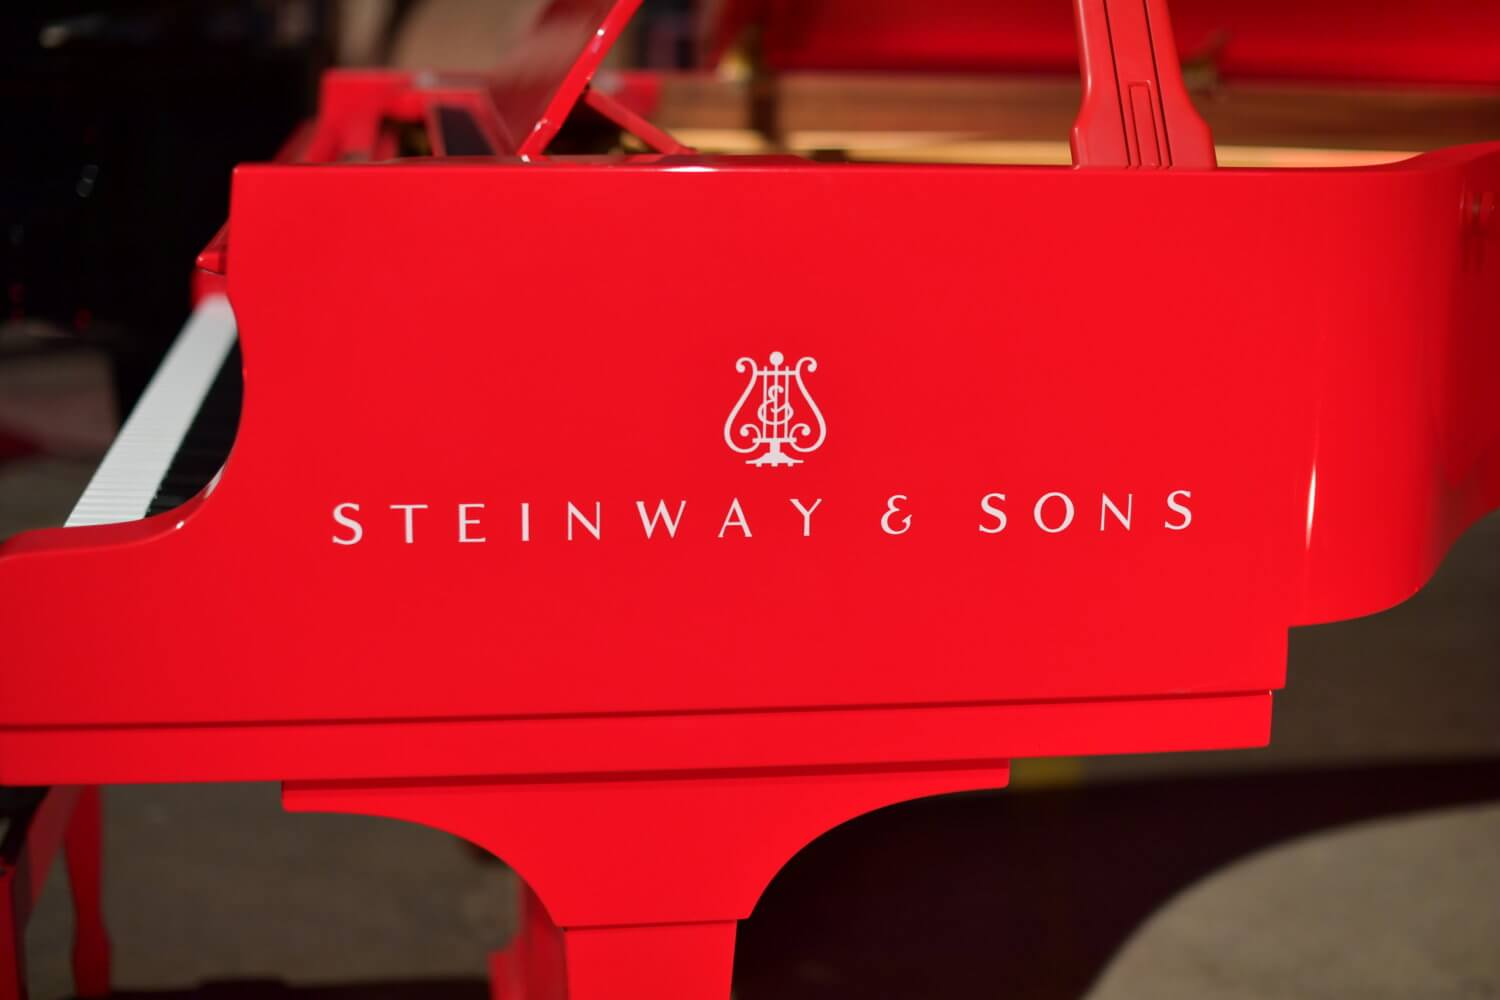 Behind the Scenes at Steinway & Sons